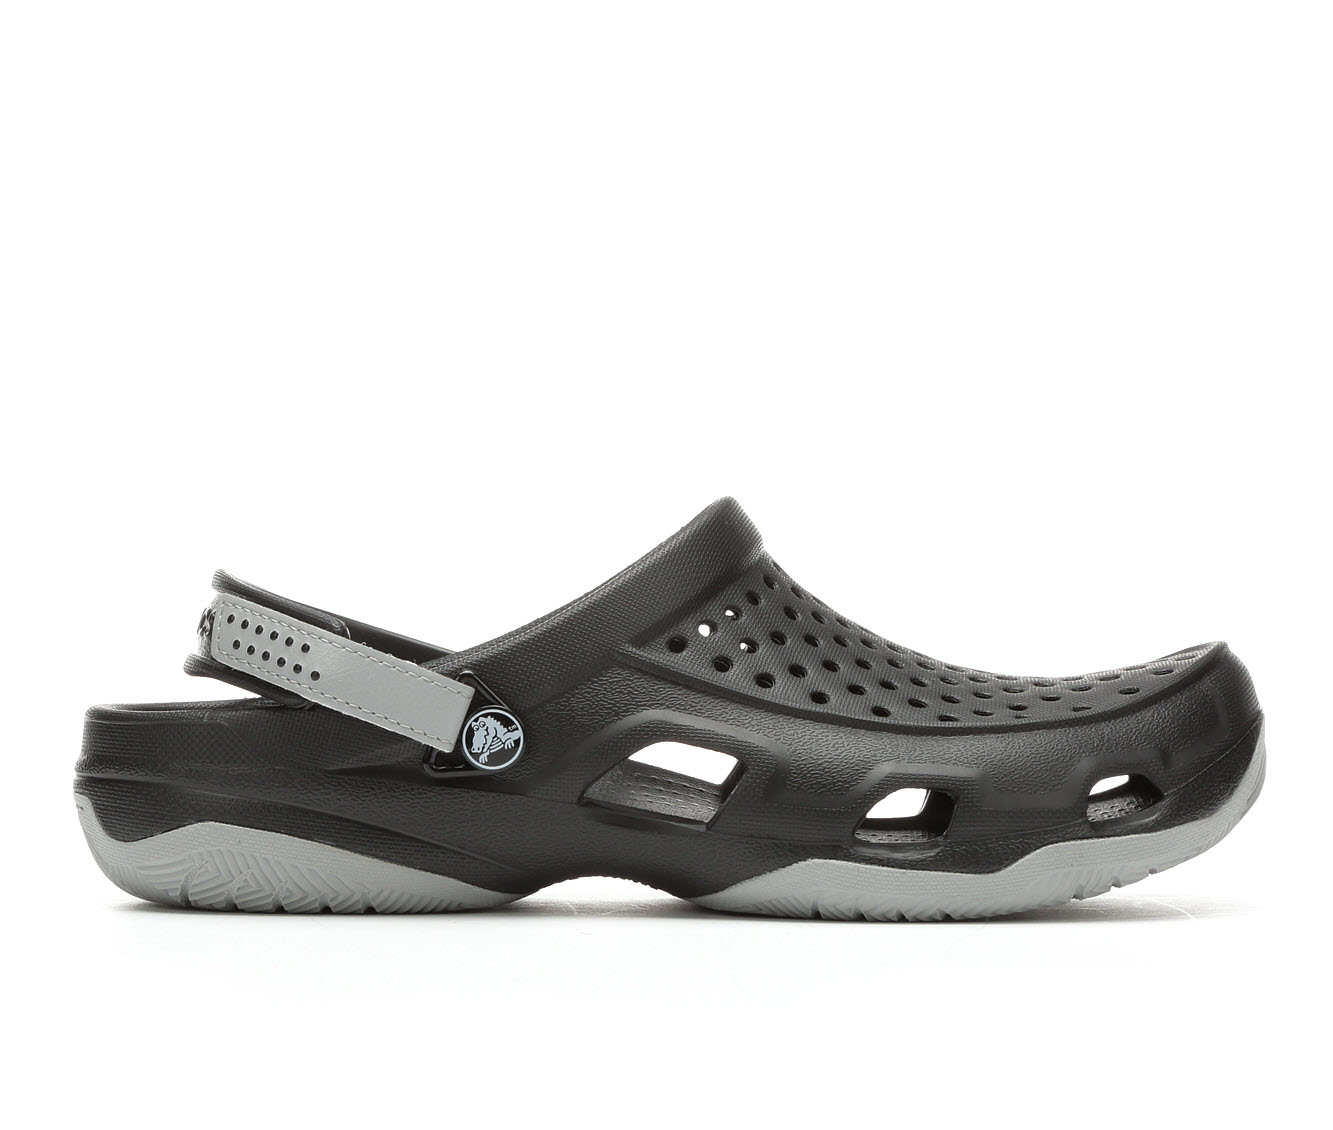 Men's Crocs Swiftwater Deck Clog Sandals (Black)